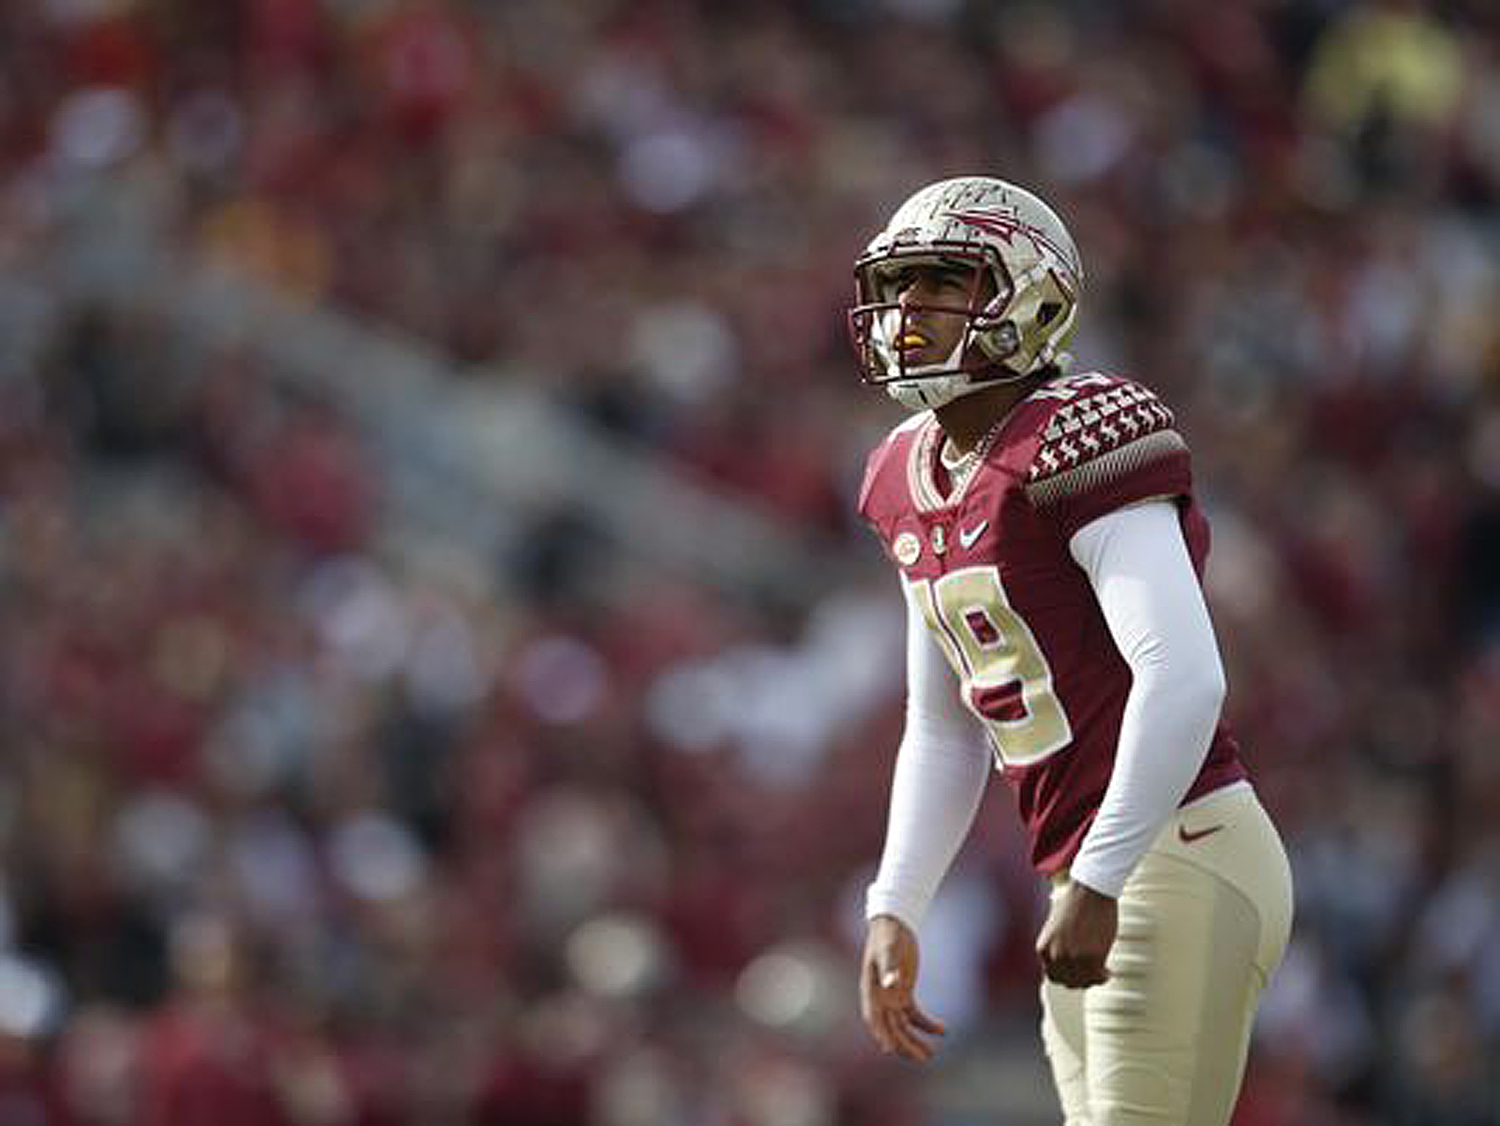 FSU's Roberto Aguayo Hopes To Be Drafted By Tampa Bay Buccaneers